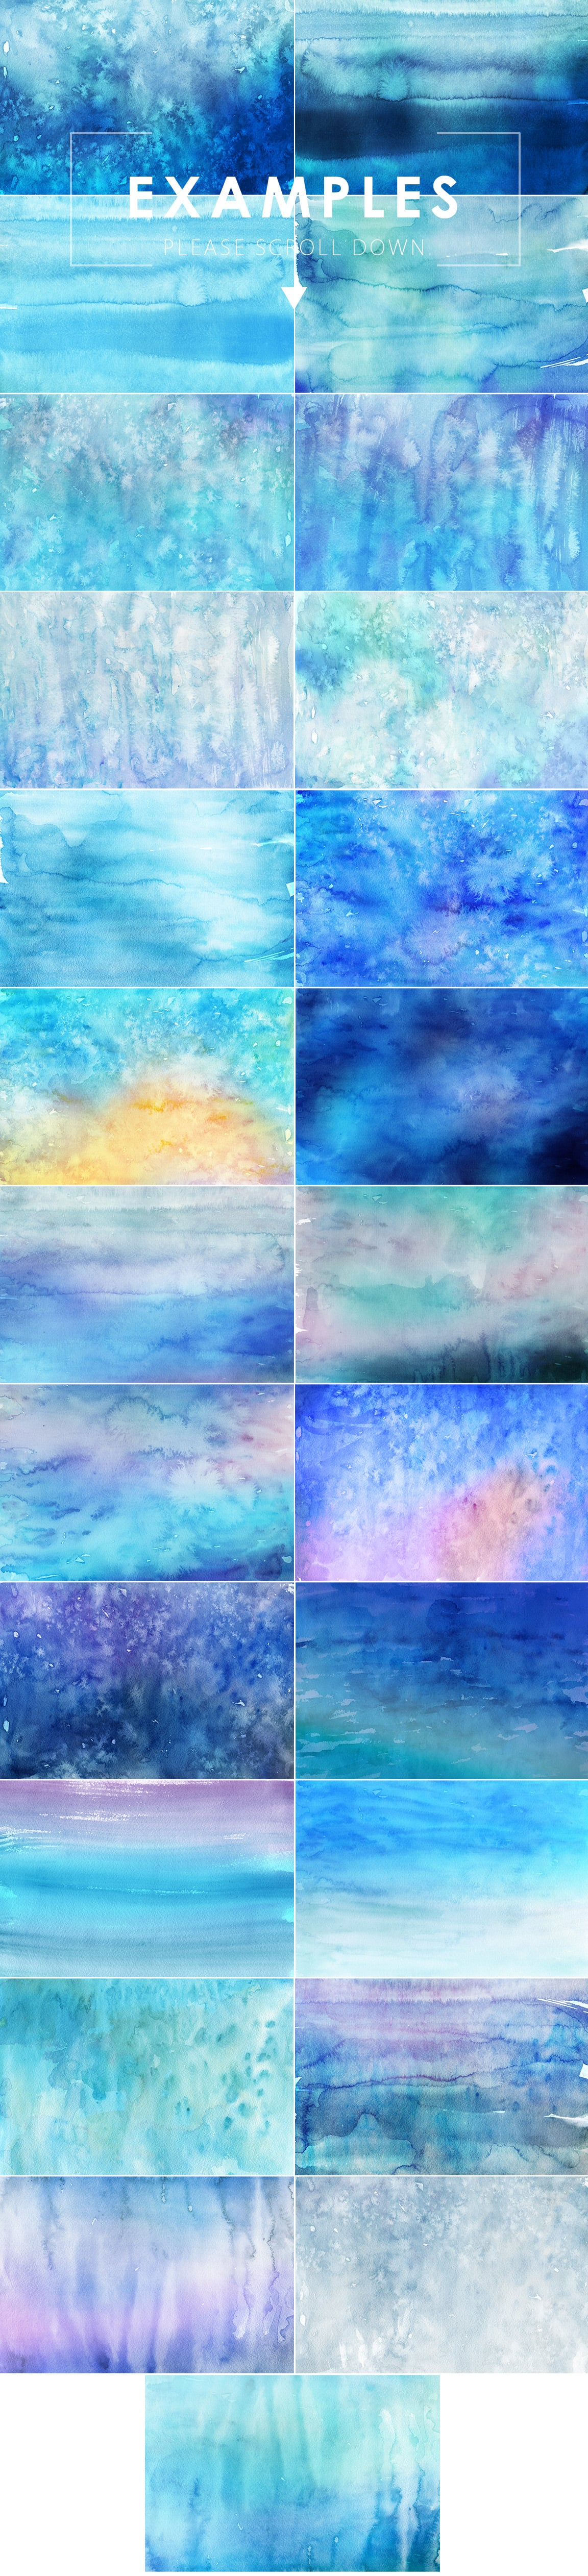 540+ Watercolor Backgrounds Bundle - 544 Items. Only $18! - winter watercolor backgrounds prev2 o